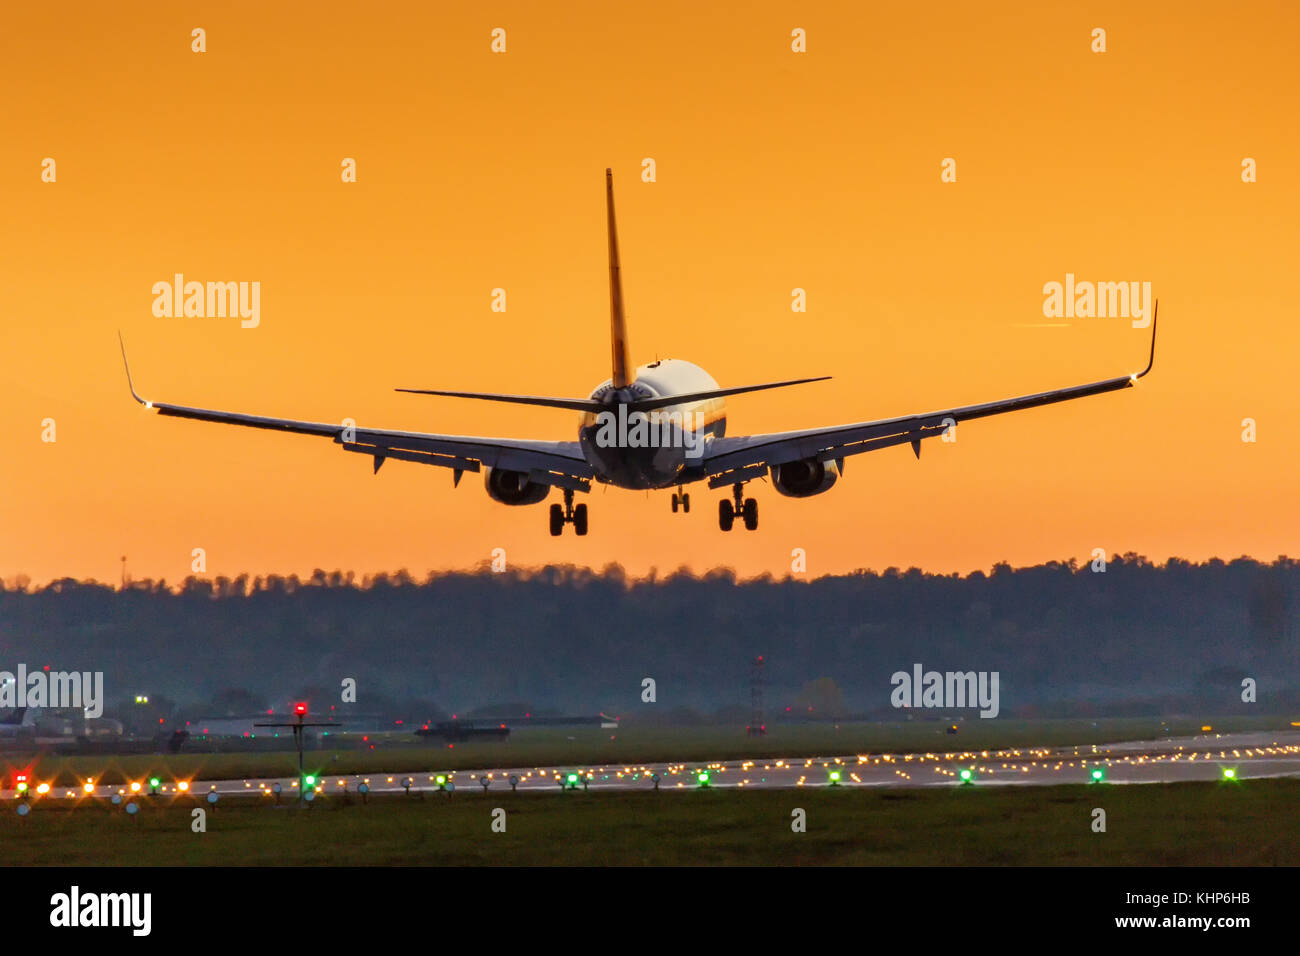 L'atterrissage de l'avion l'aéroport de Stuttgart soleil coucher locations de vacances billet d'avion Photo Stock